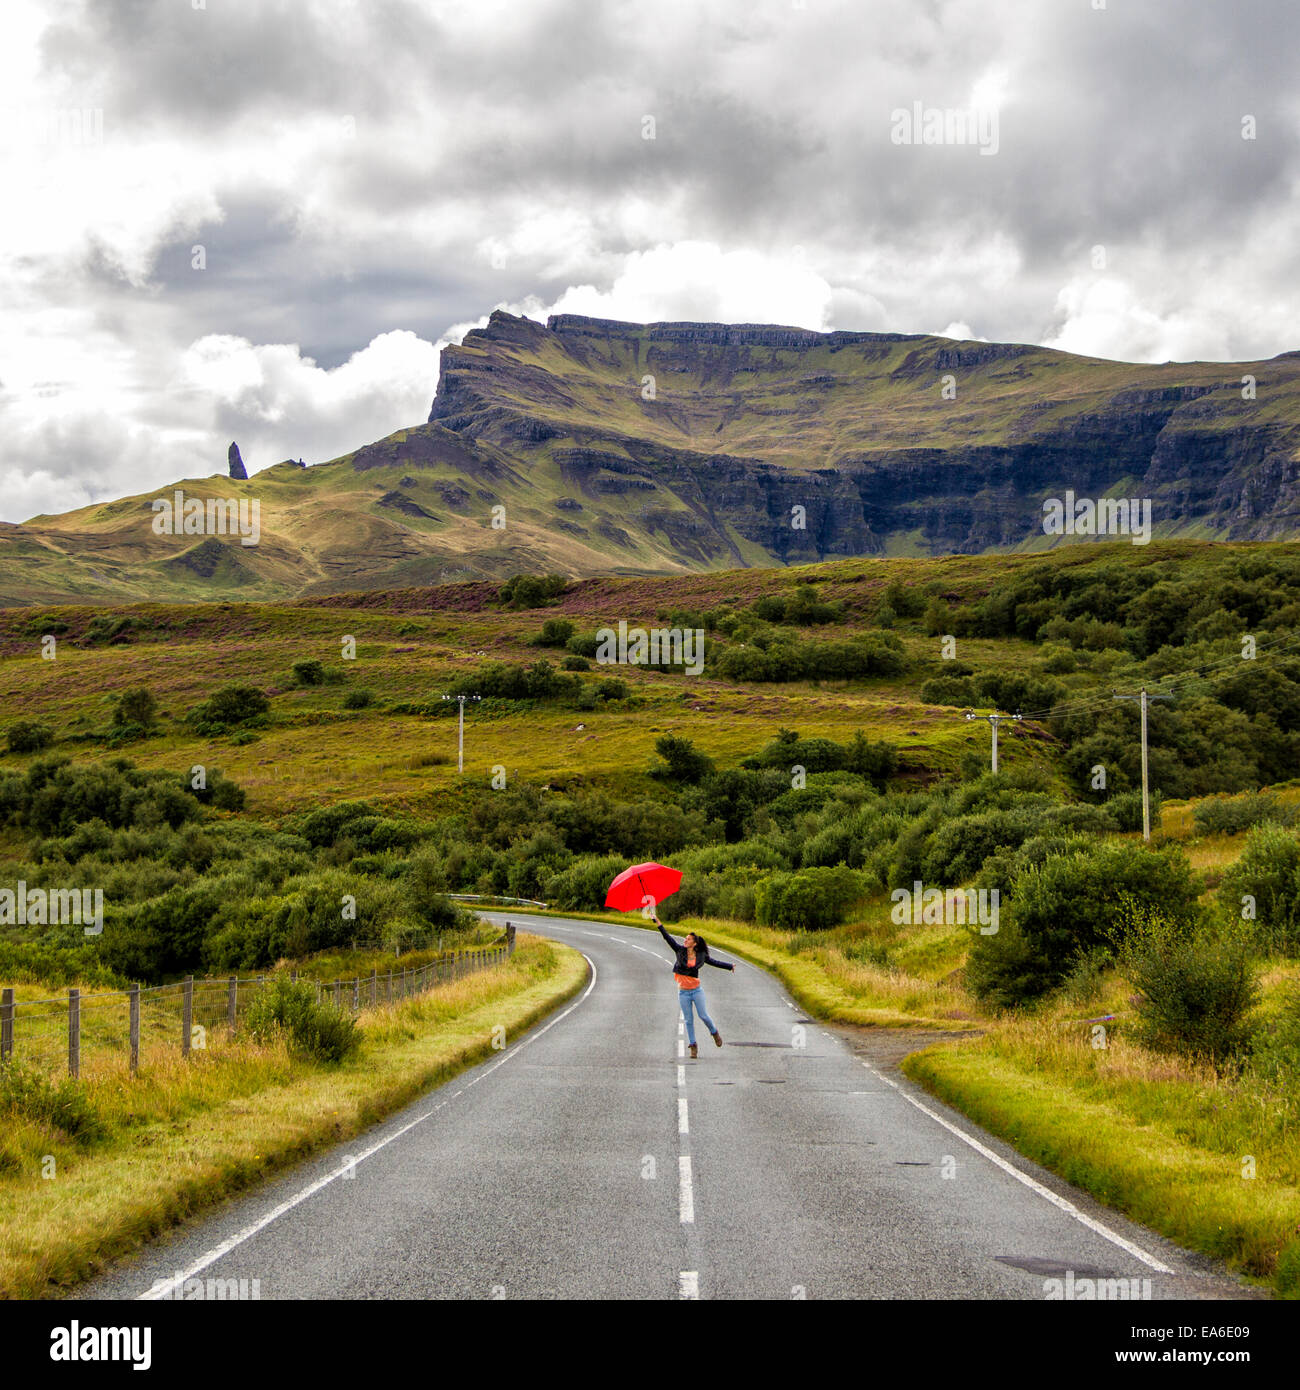 UK, Scotland, Woman with umbrella on country road - Stock Image